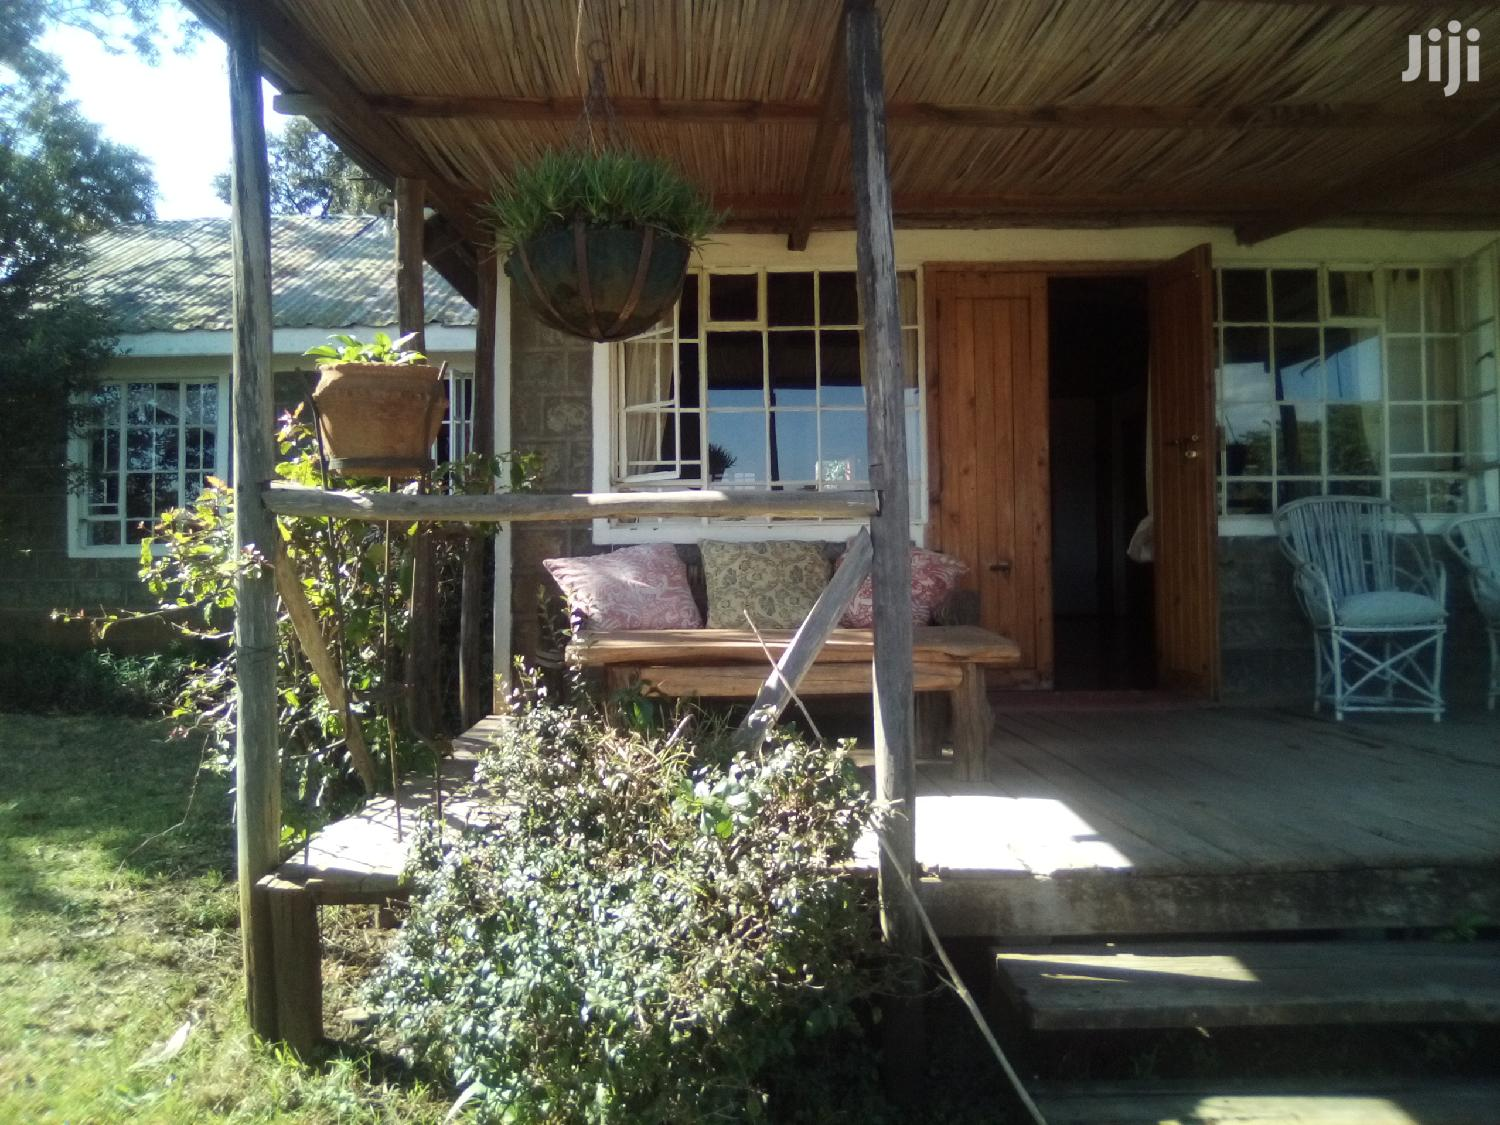 1793 Acres In Naivasha Up For Sale | Land & Plots For Sale for sale in Naivasha East, Nakuru, Kenya